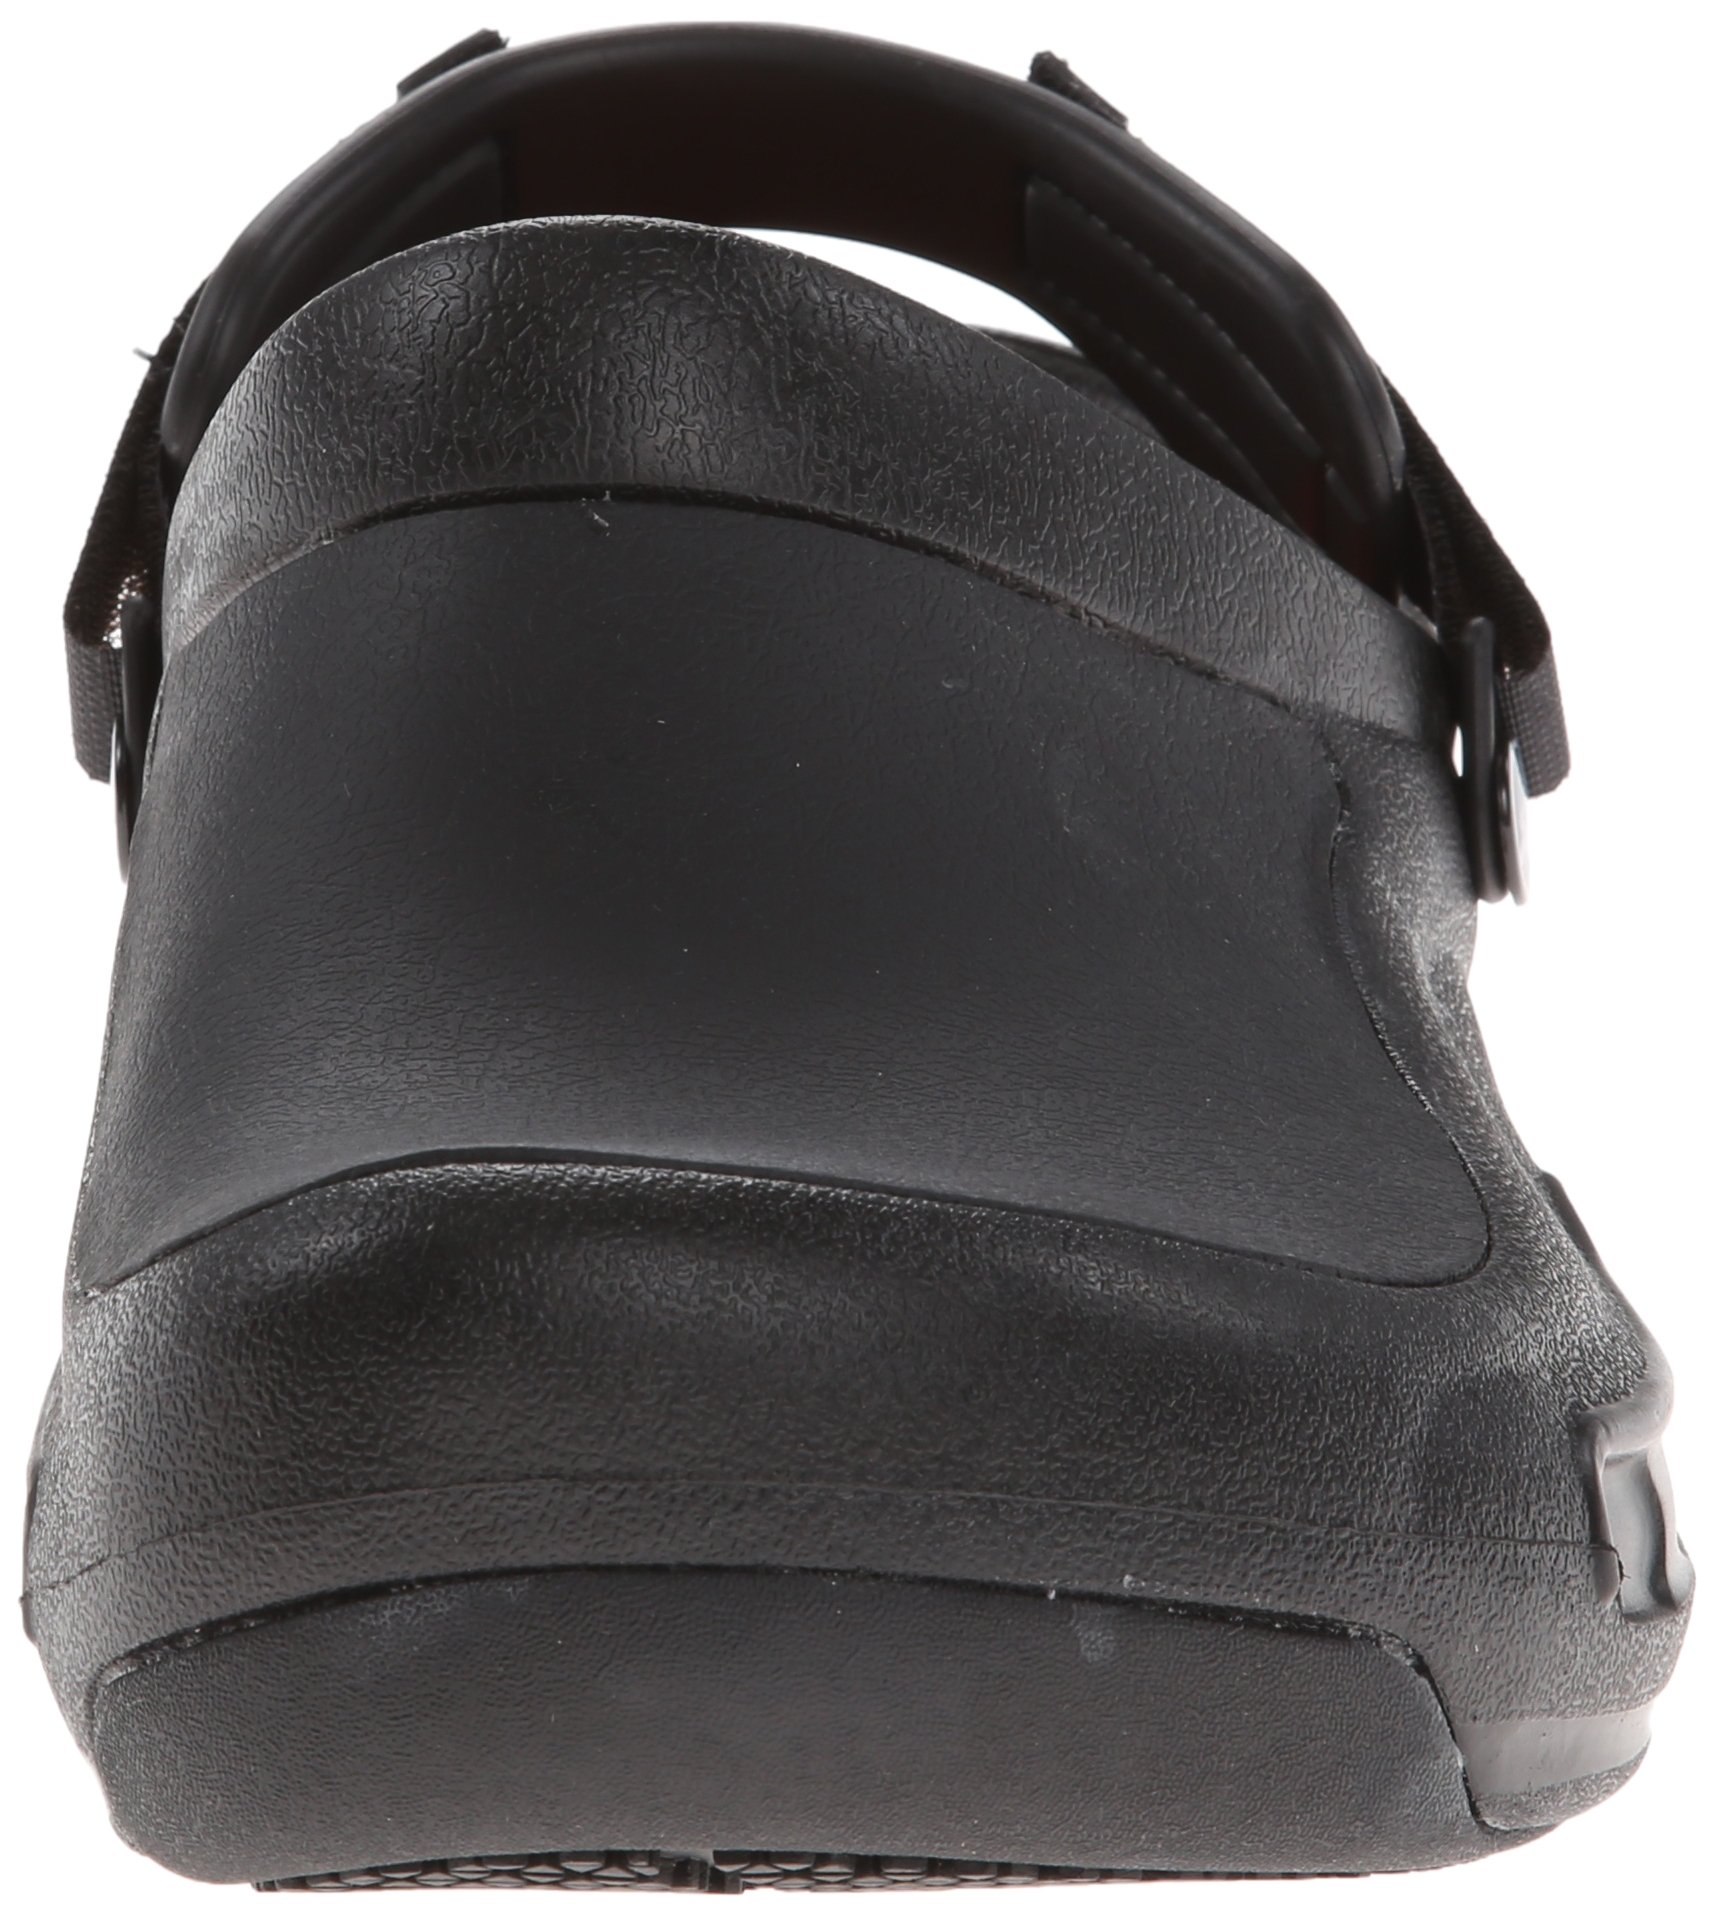 Crocs Men's 15010 Bistro Pro Clog,Black,11 M US by Crocs (Image #4)